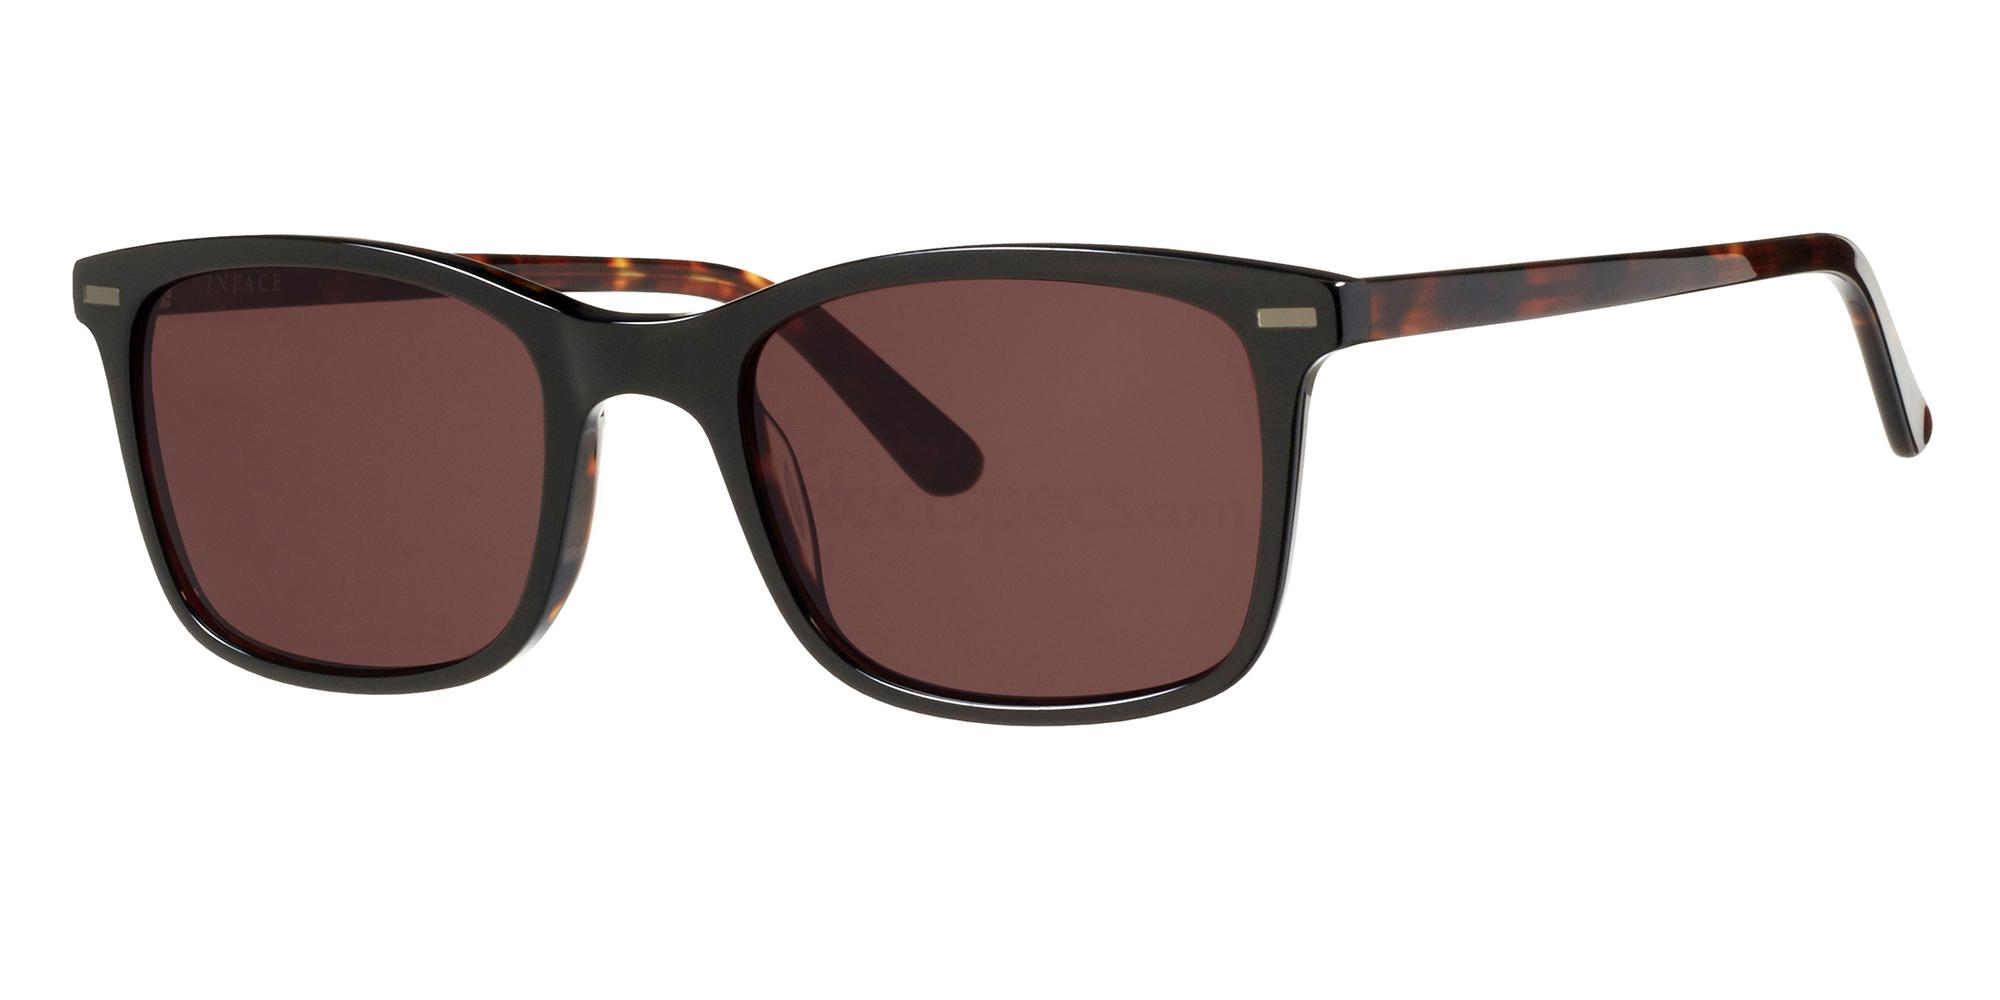 5532 IF9794 Sunglasses, Inface in Love